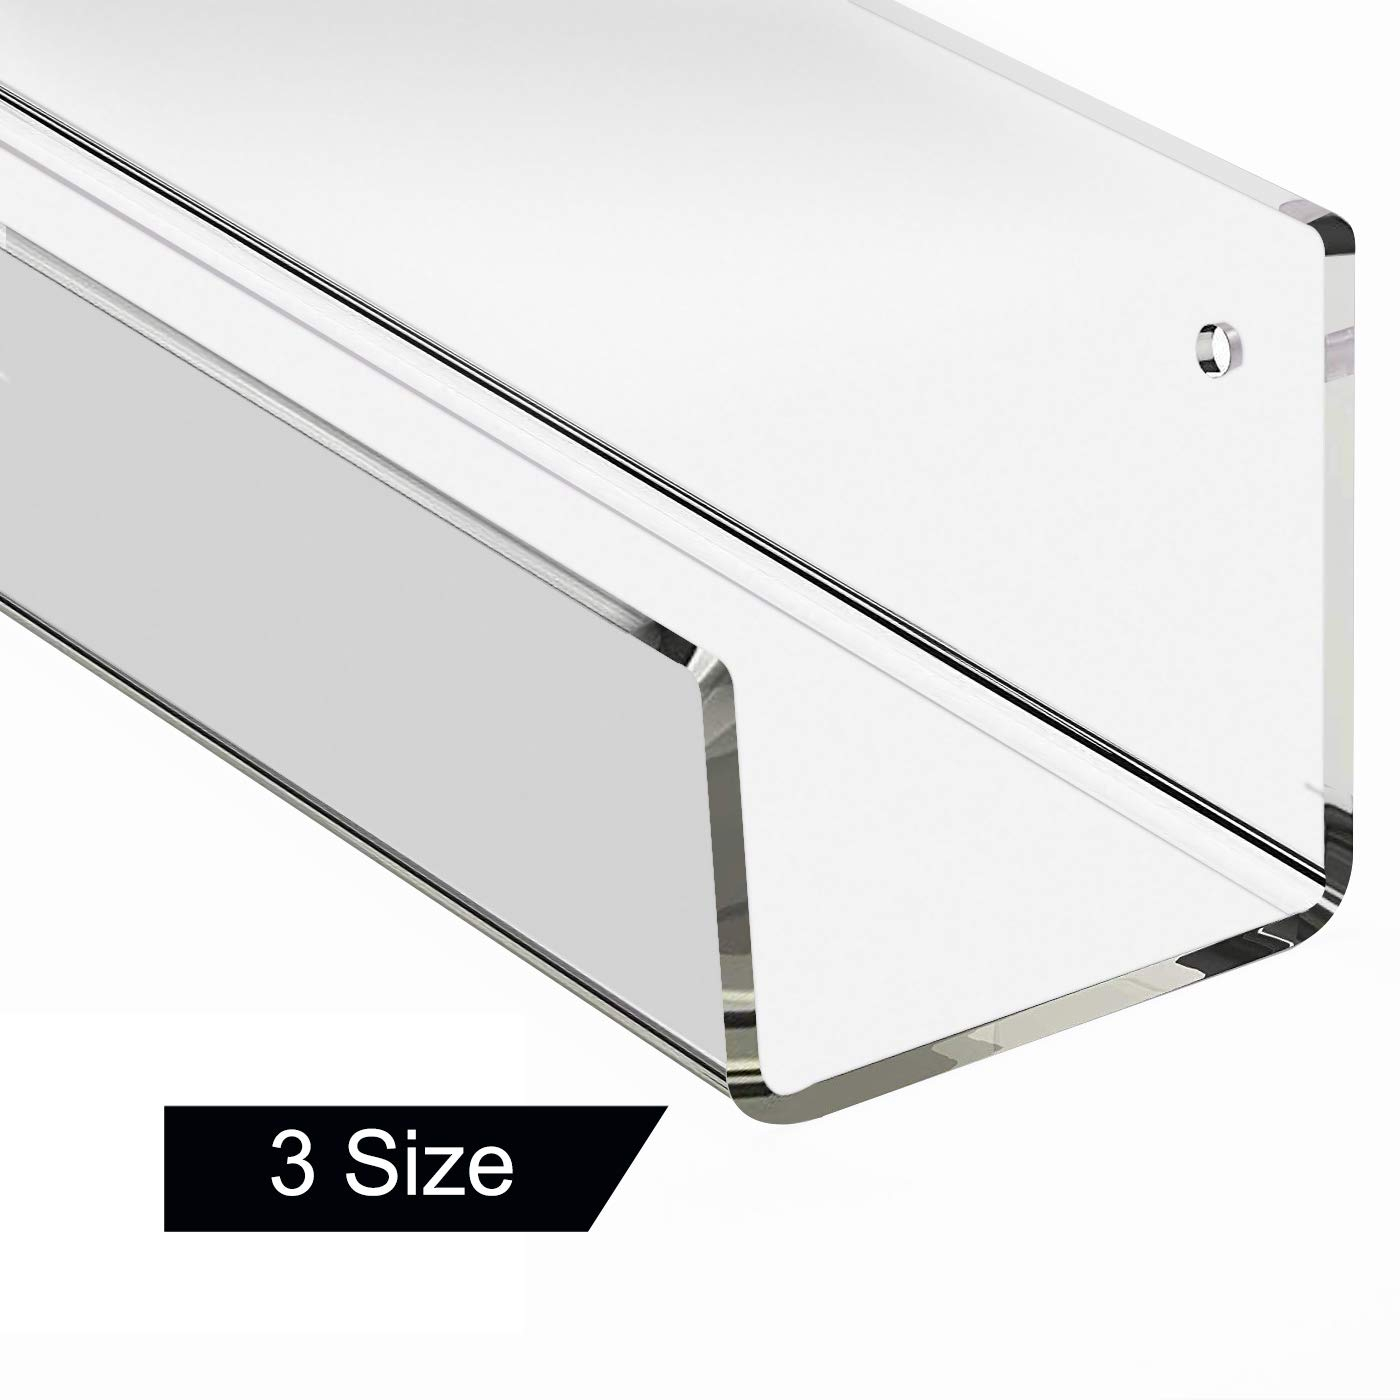 Clear Acrylic Floating Wall Mounted Shelf 16 inch, Unique Modern Wall Hanging Bookshelves, Display Holder for Bathroom Bedroom Office Nursery Decoration Pack 1